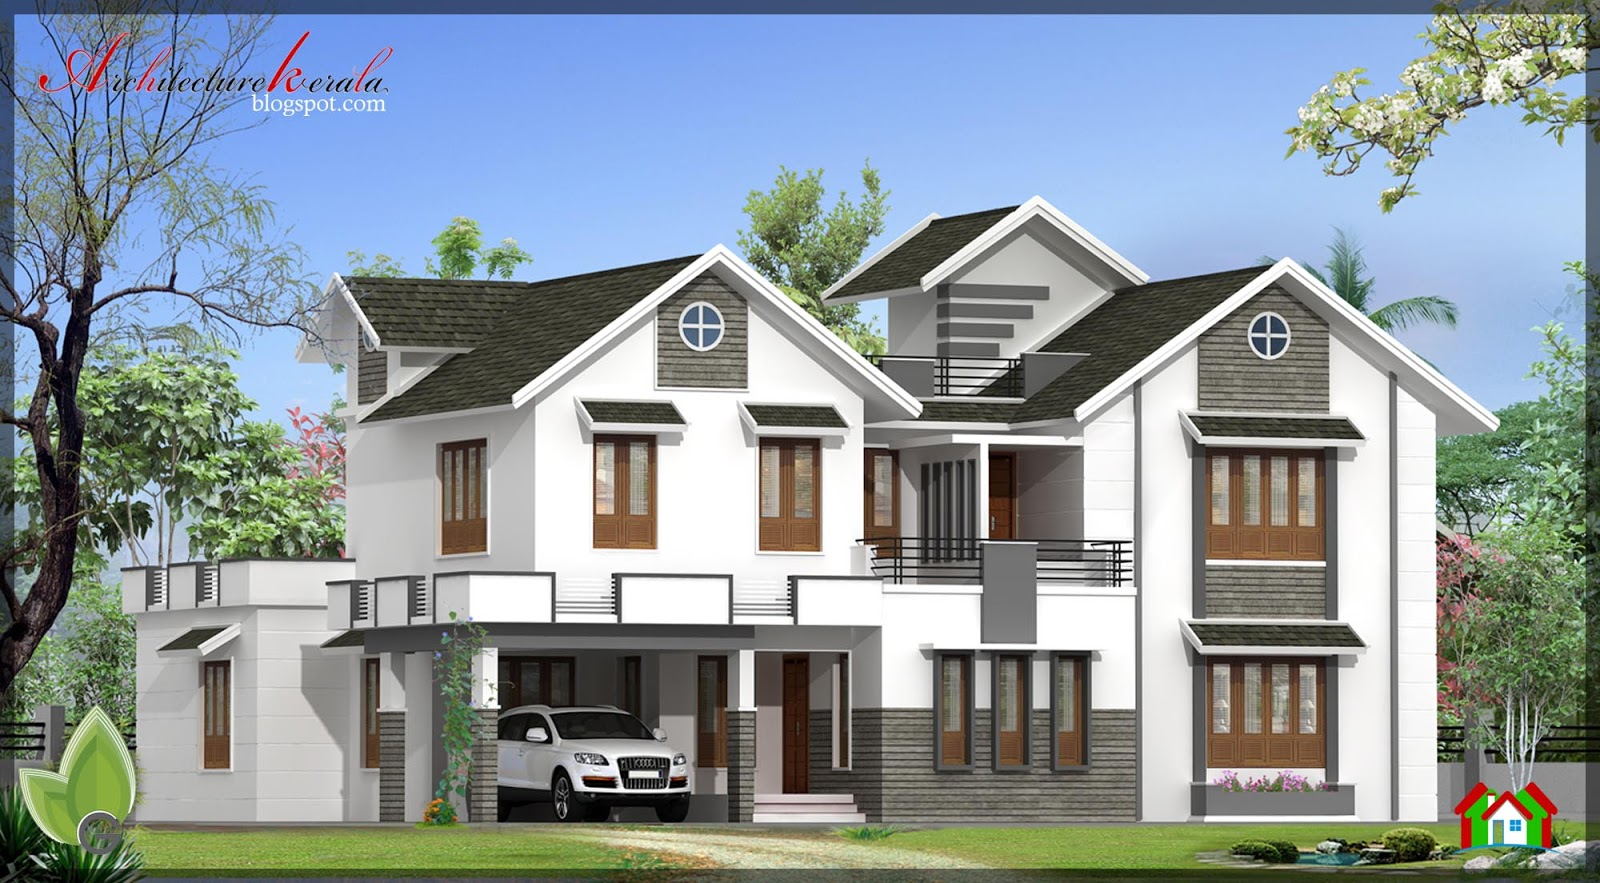 3000 sq ft house elevation architecture kerala - Kerala exterior model homes ...